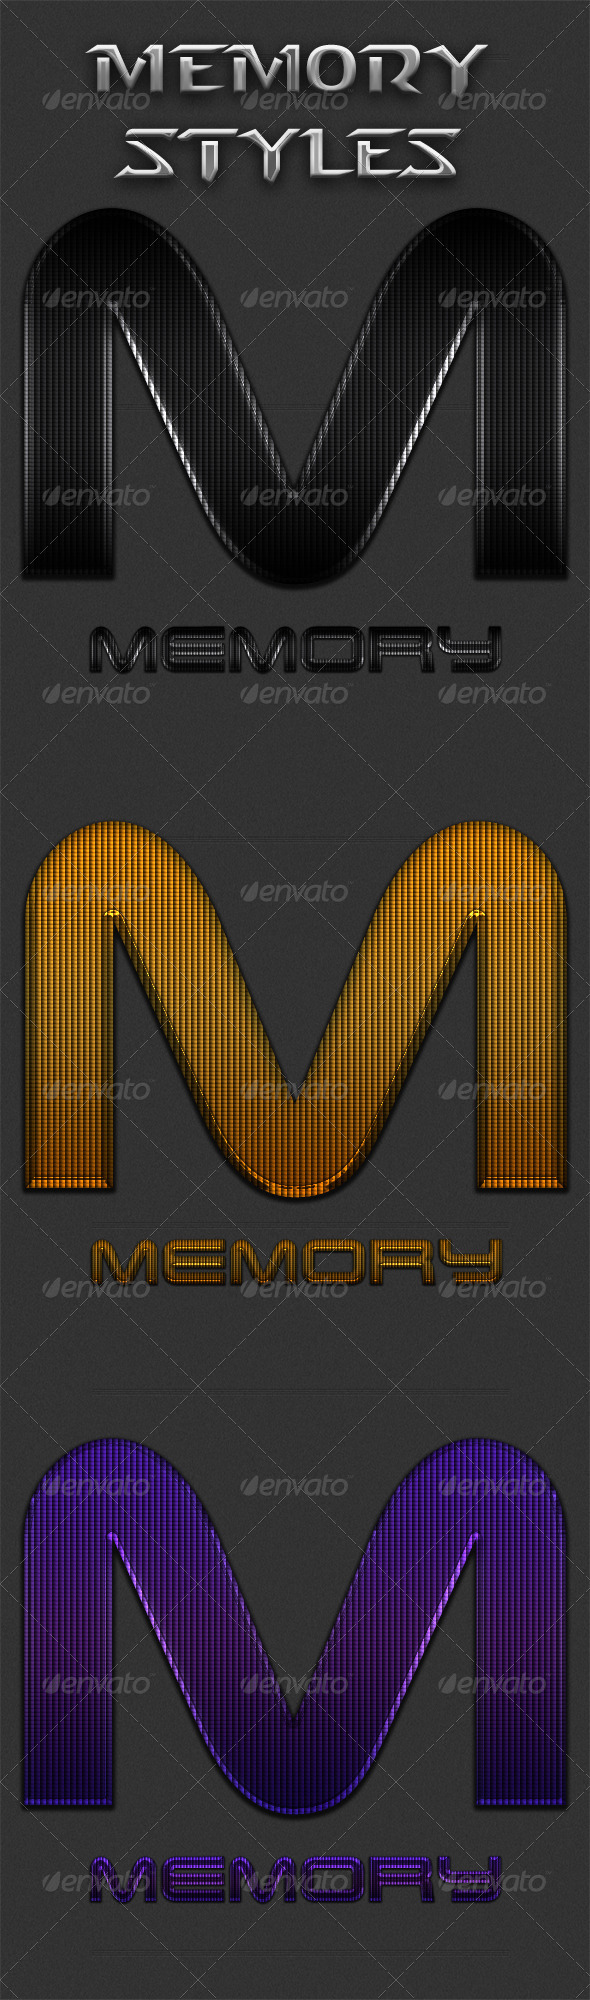 GraphicRiver 3 Memory Styles 5402173